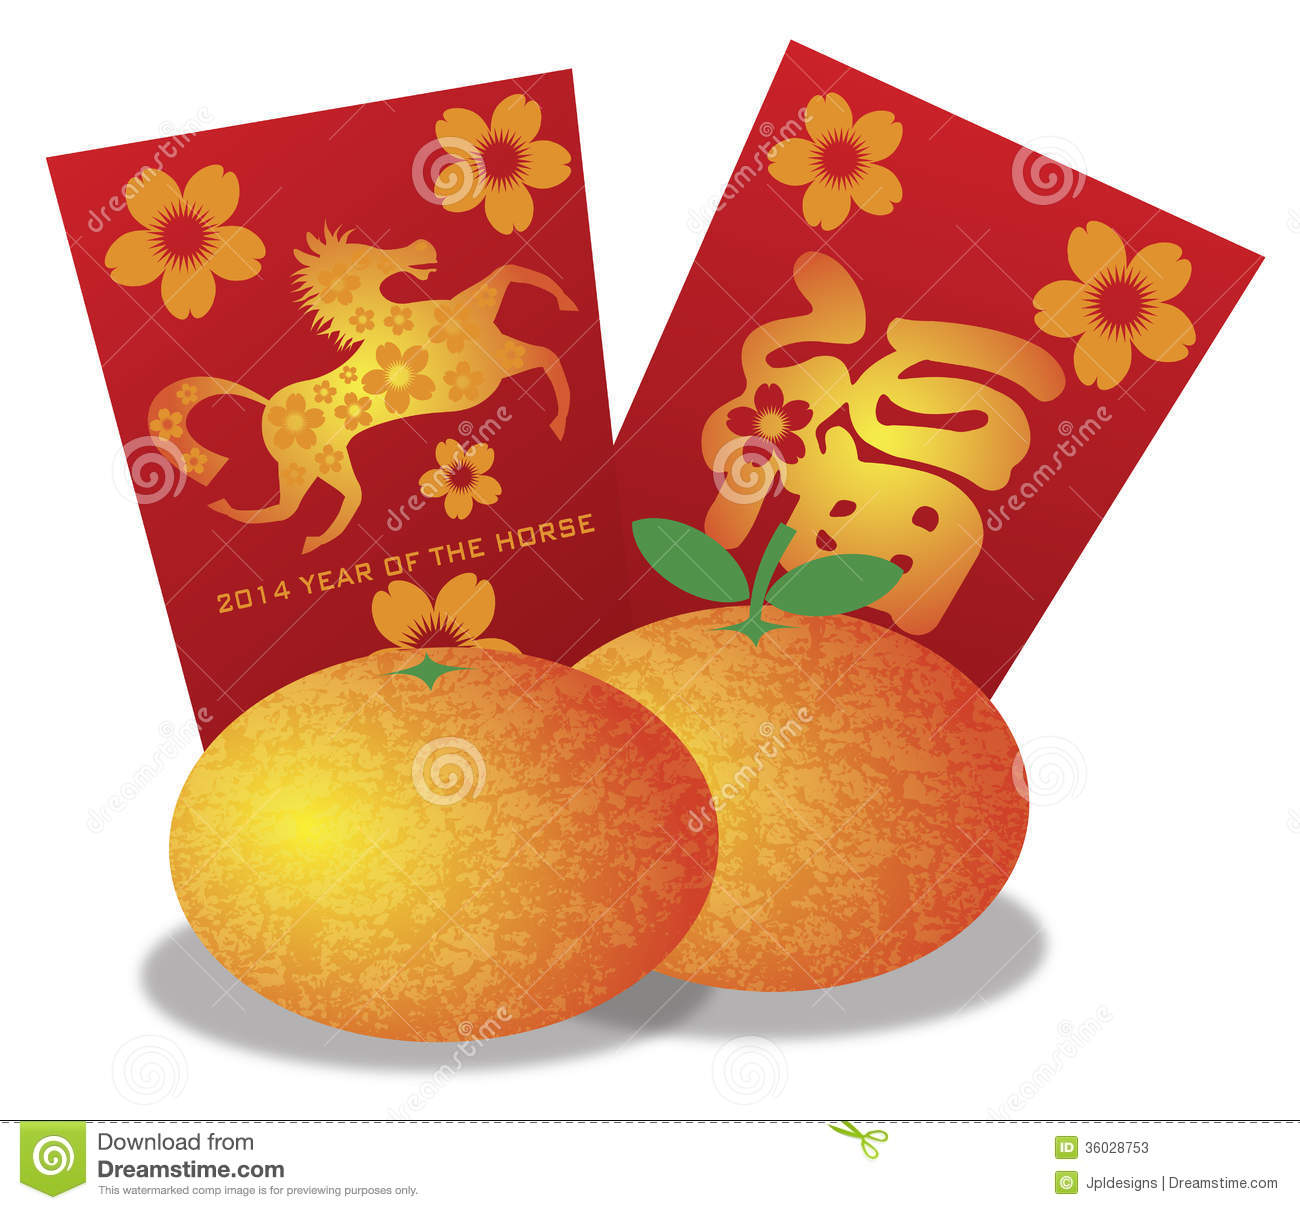 Chinese new year clipart 2014.